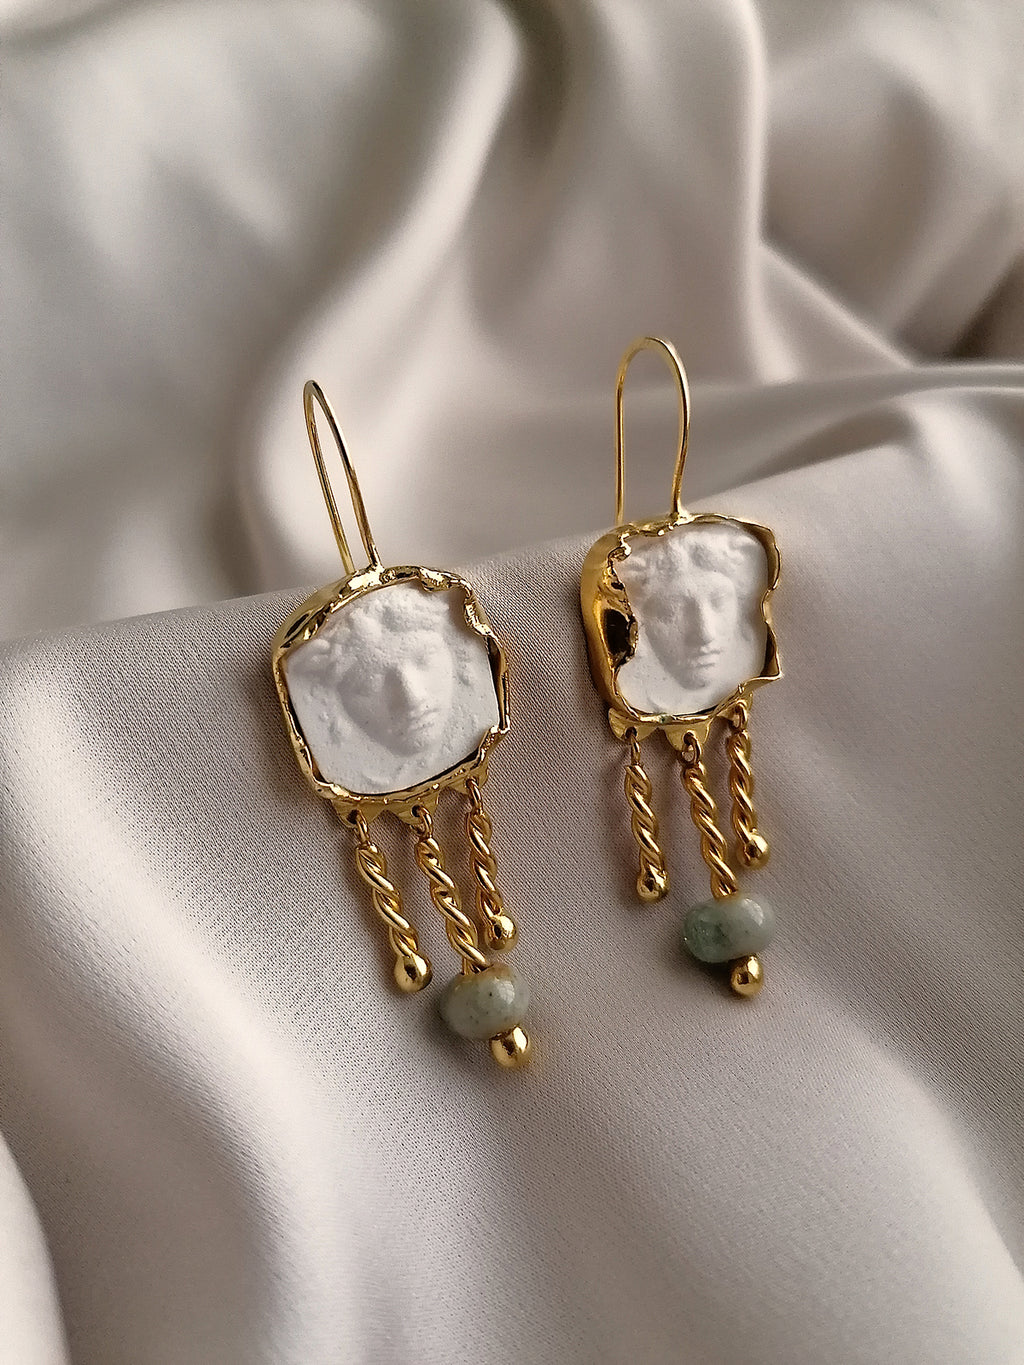 WHITE MEDUSA EARRINGS